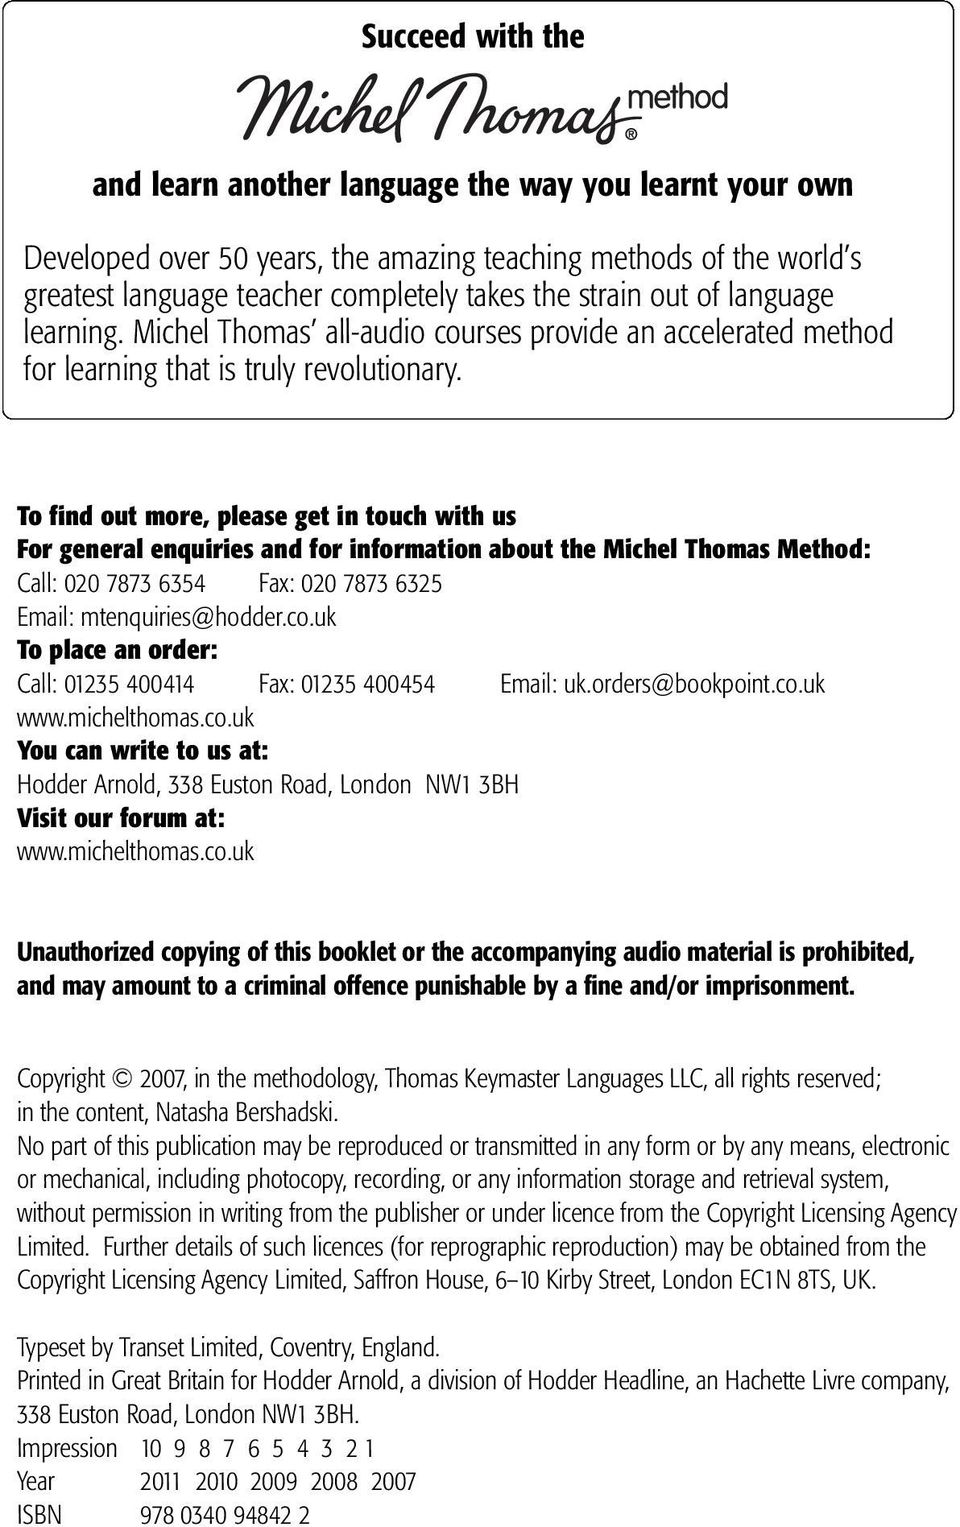 To find out more, please get in touch with us For general enquiries and for information about the Michel Thomas Method: Call: 020 7873 6354 Fax: 020 7873 6325 Email: mtenquiries@hodder.co.